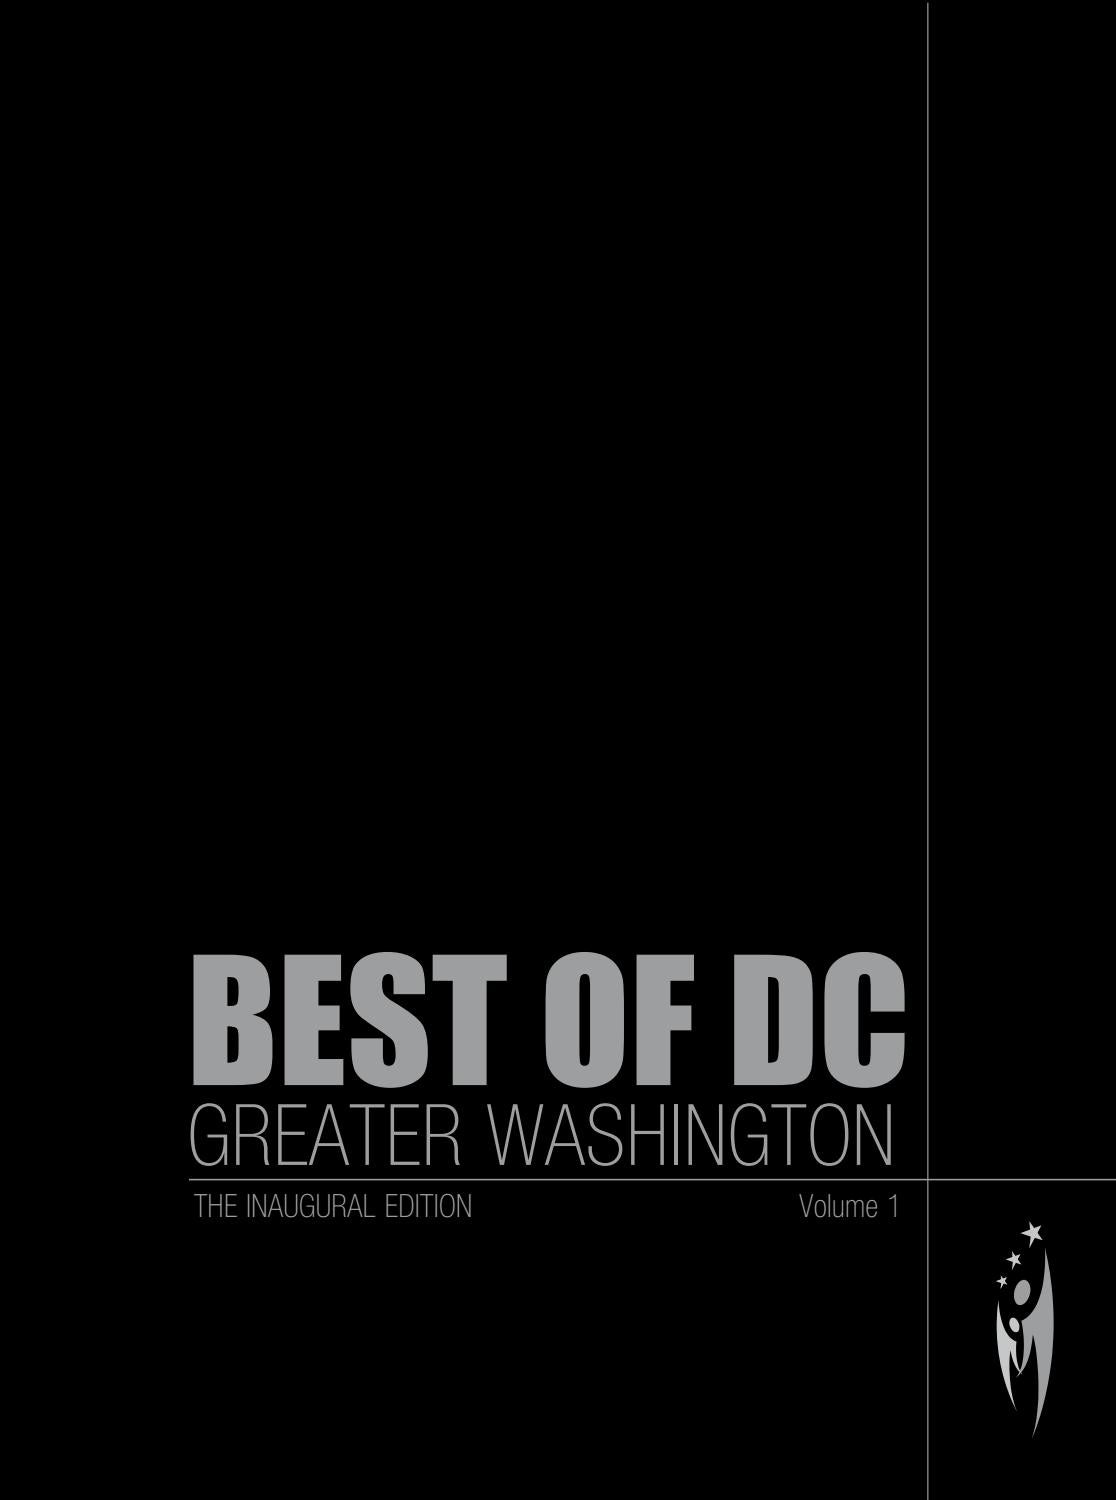 BEST OF DC Greater Washington - Volume 1 by Sven Boermeester - issuu 4a2dcb056